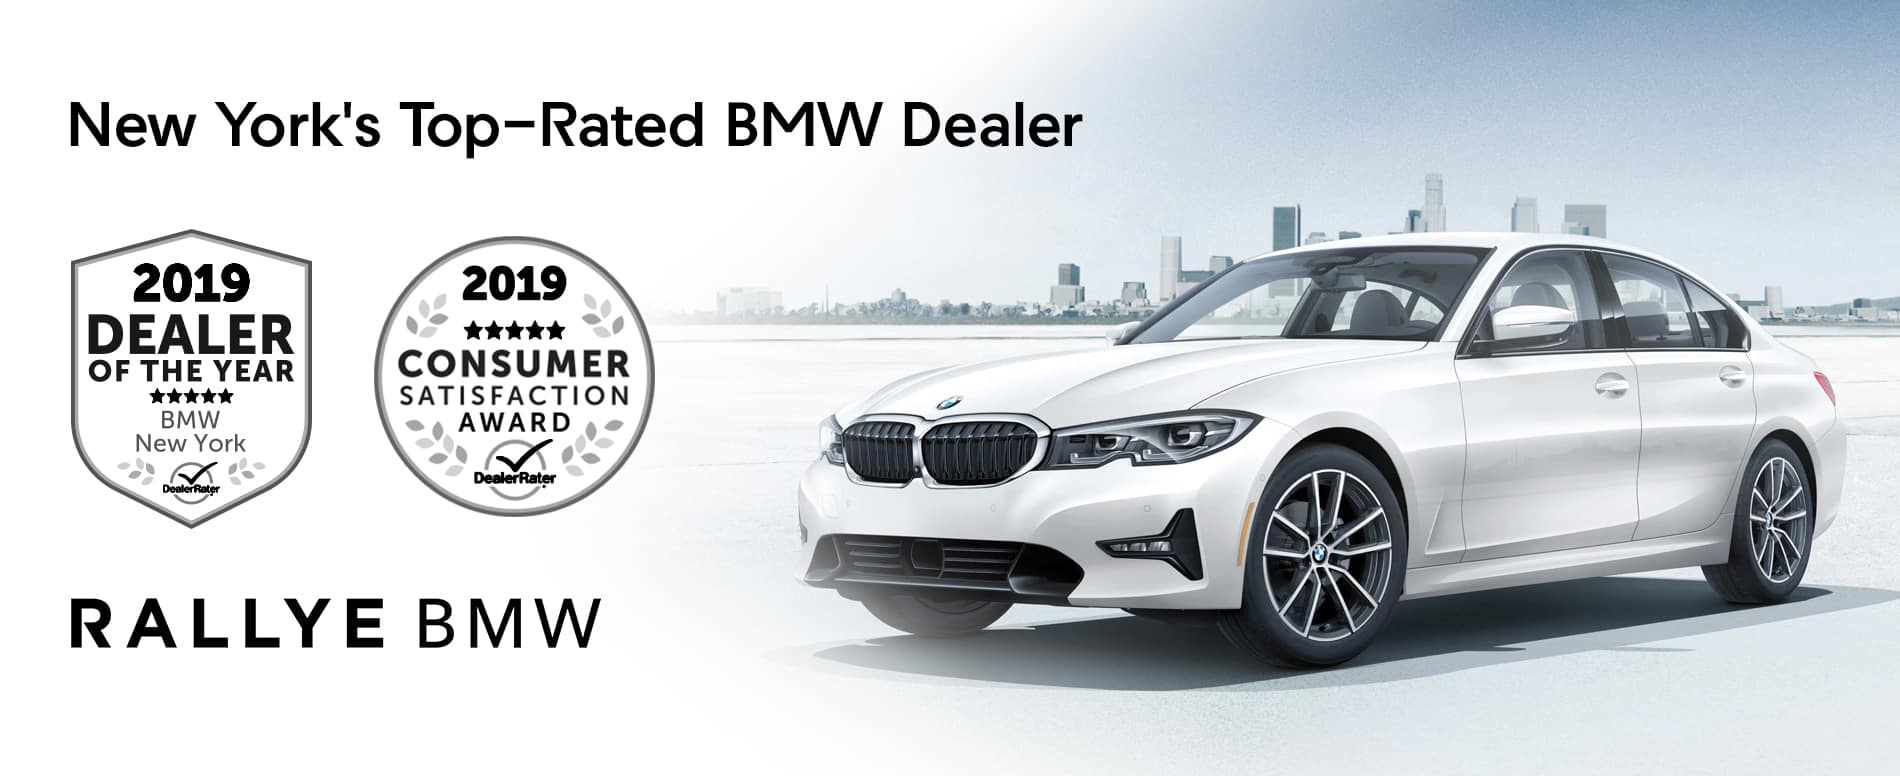 New York's Top-Rated BMW